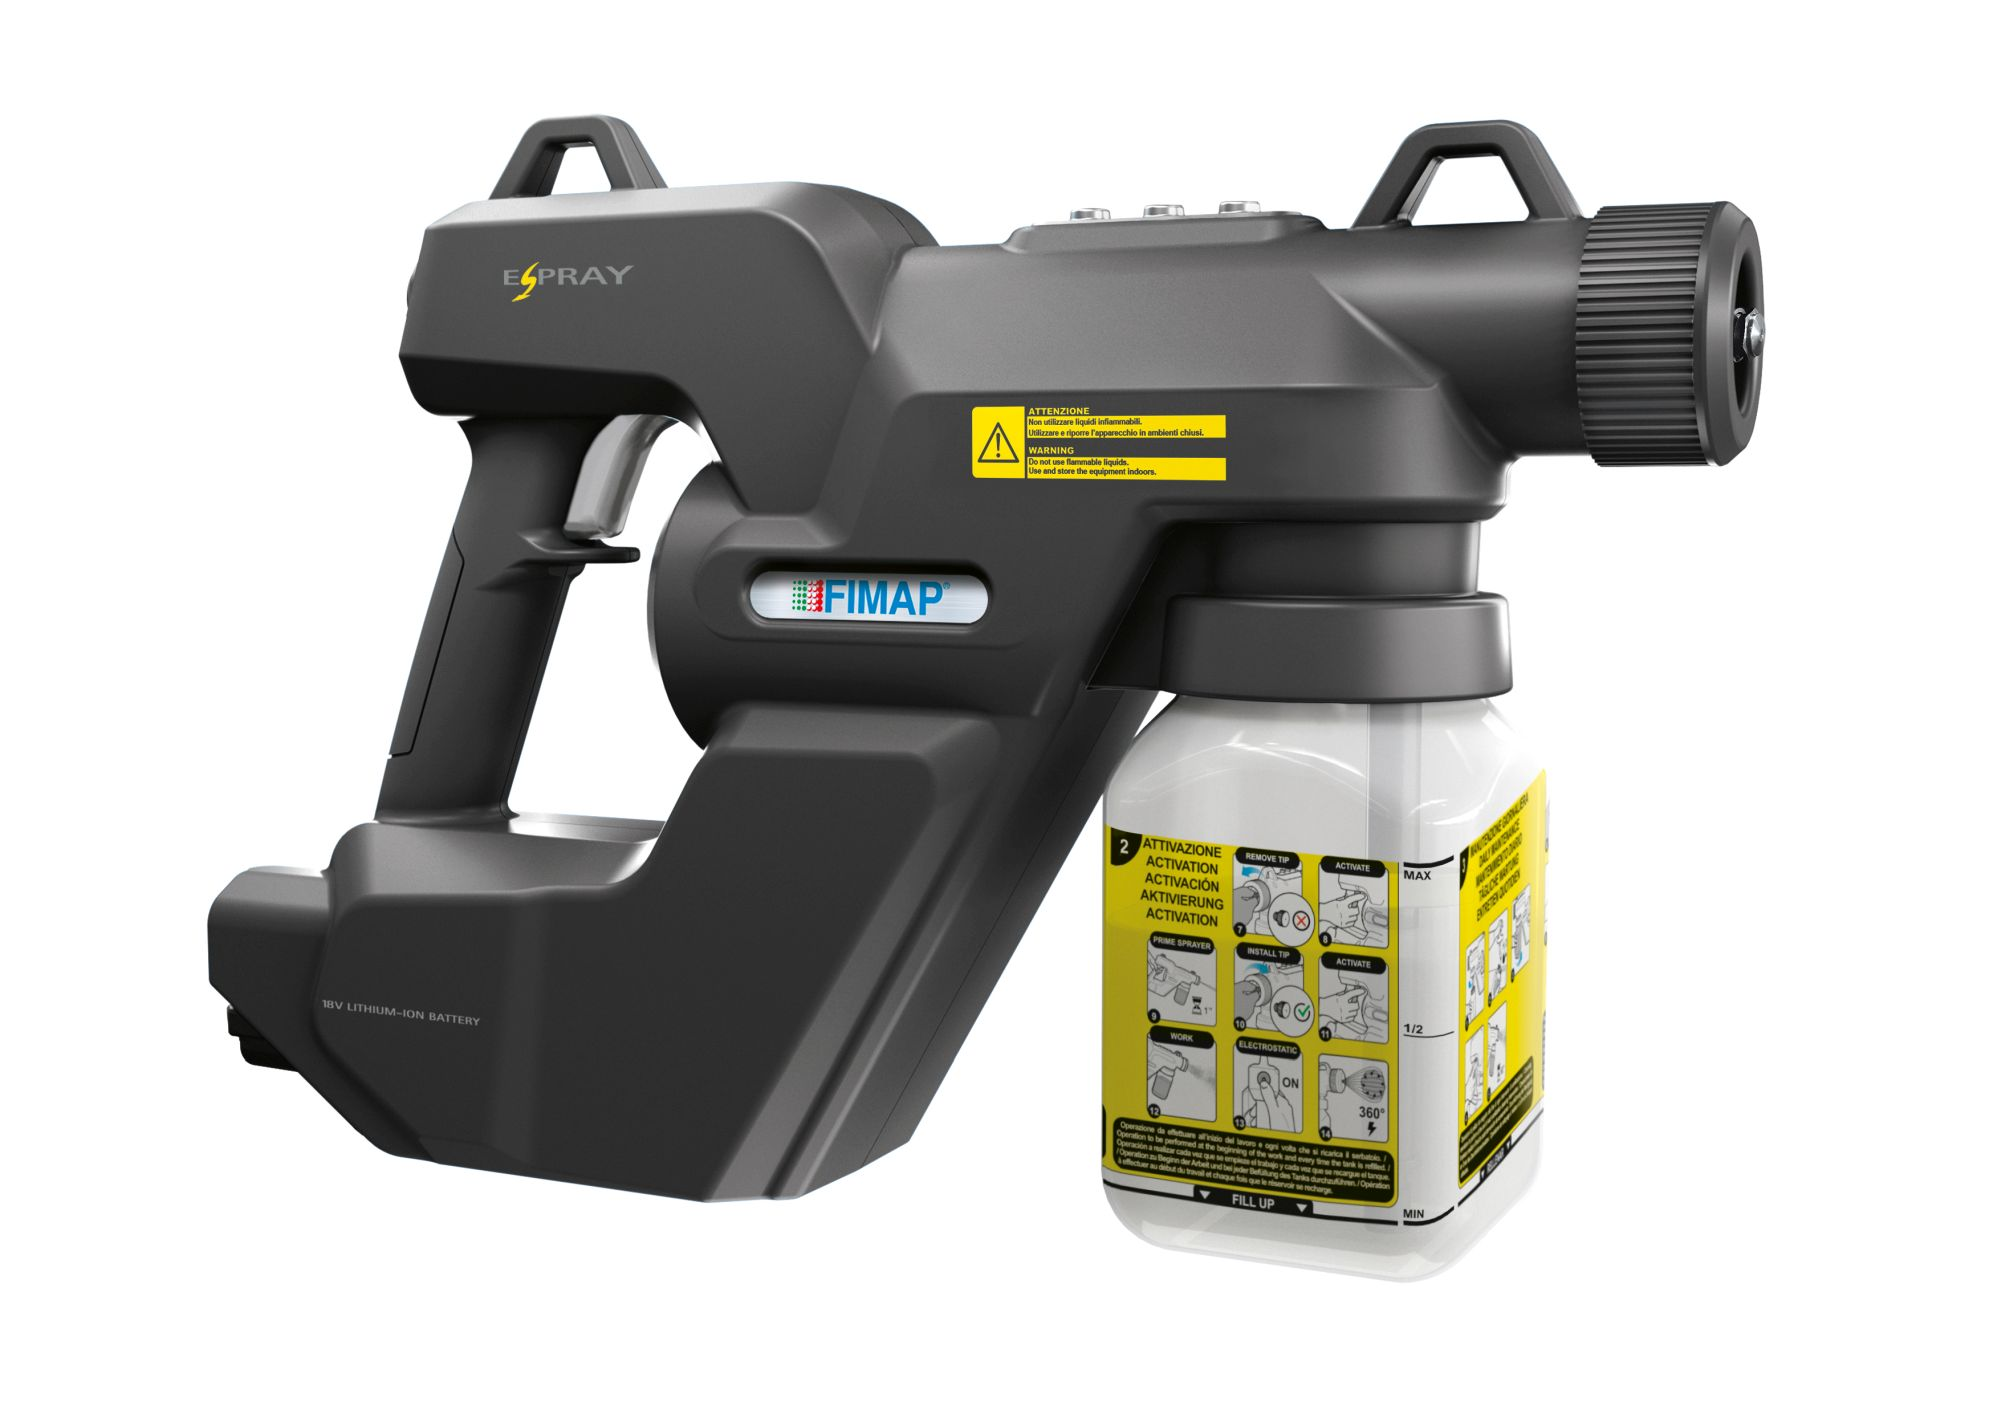 Fimap E-Spray